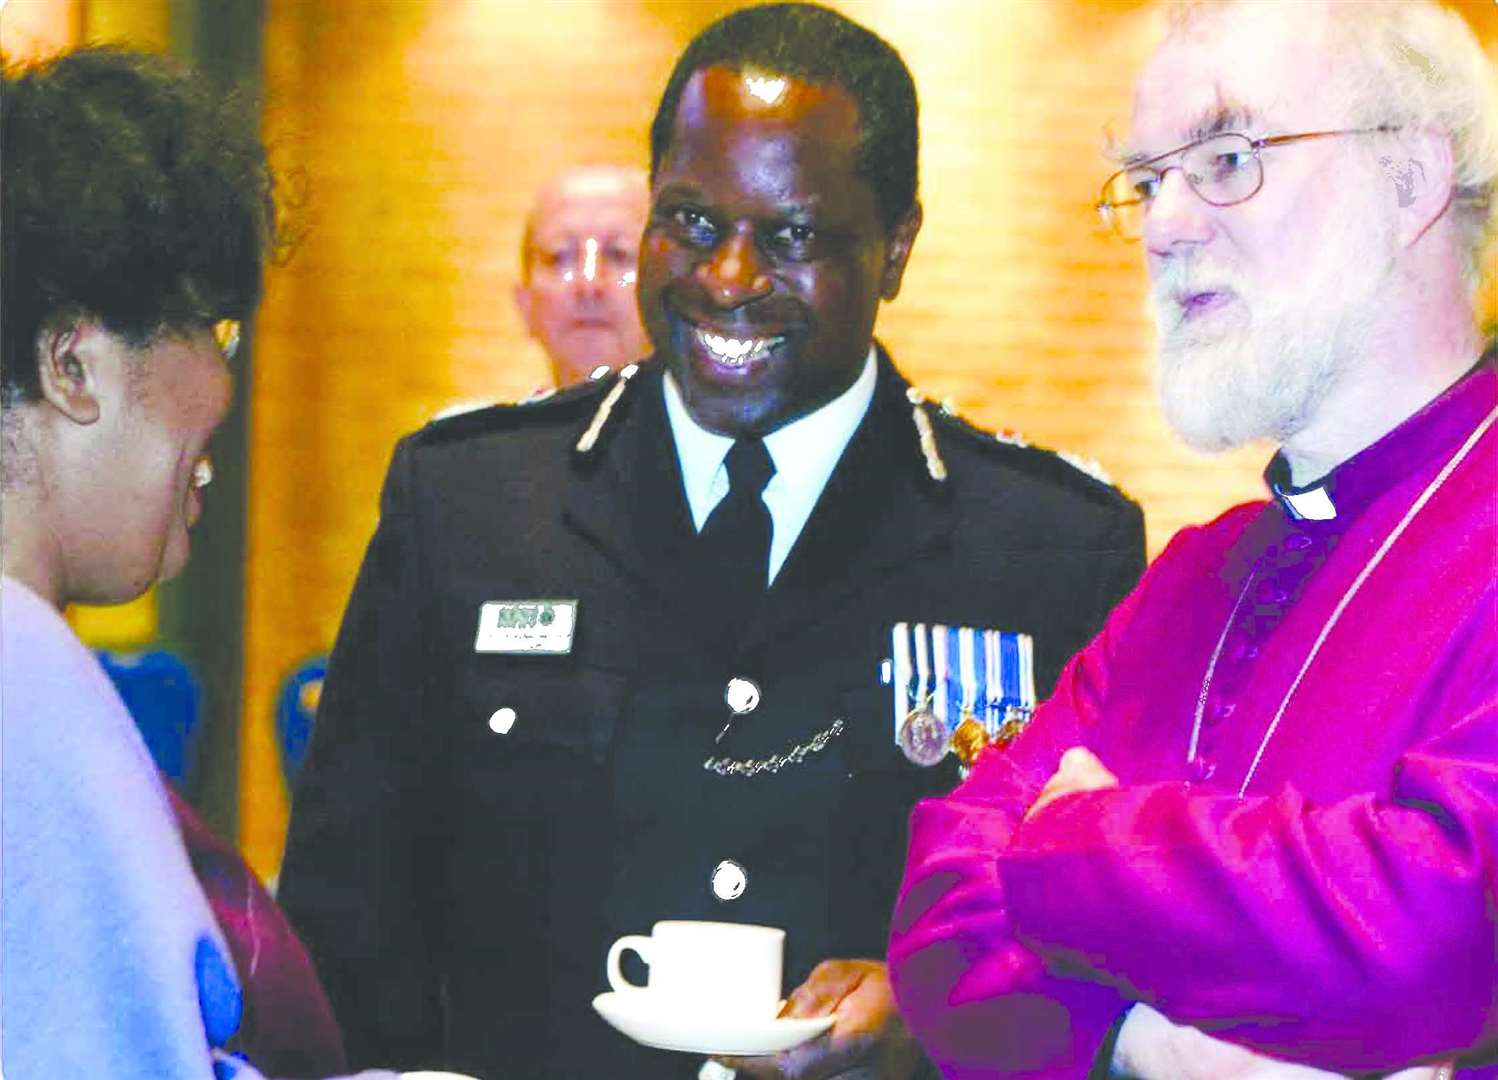 Michael Fuller alongside former Archbishop of Canterbury Dr Rowan Williams